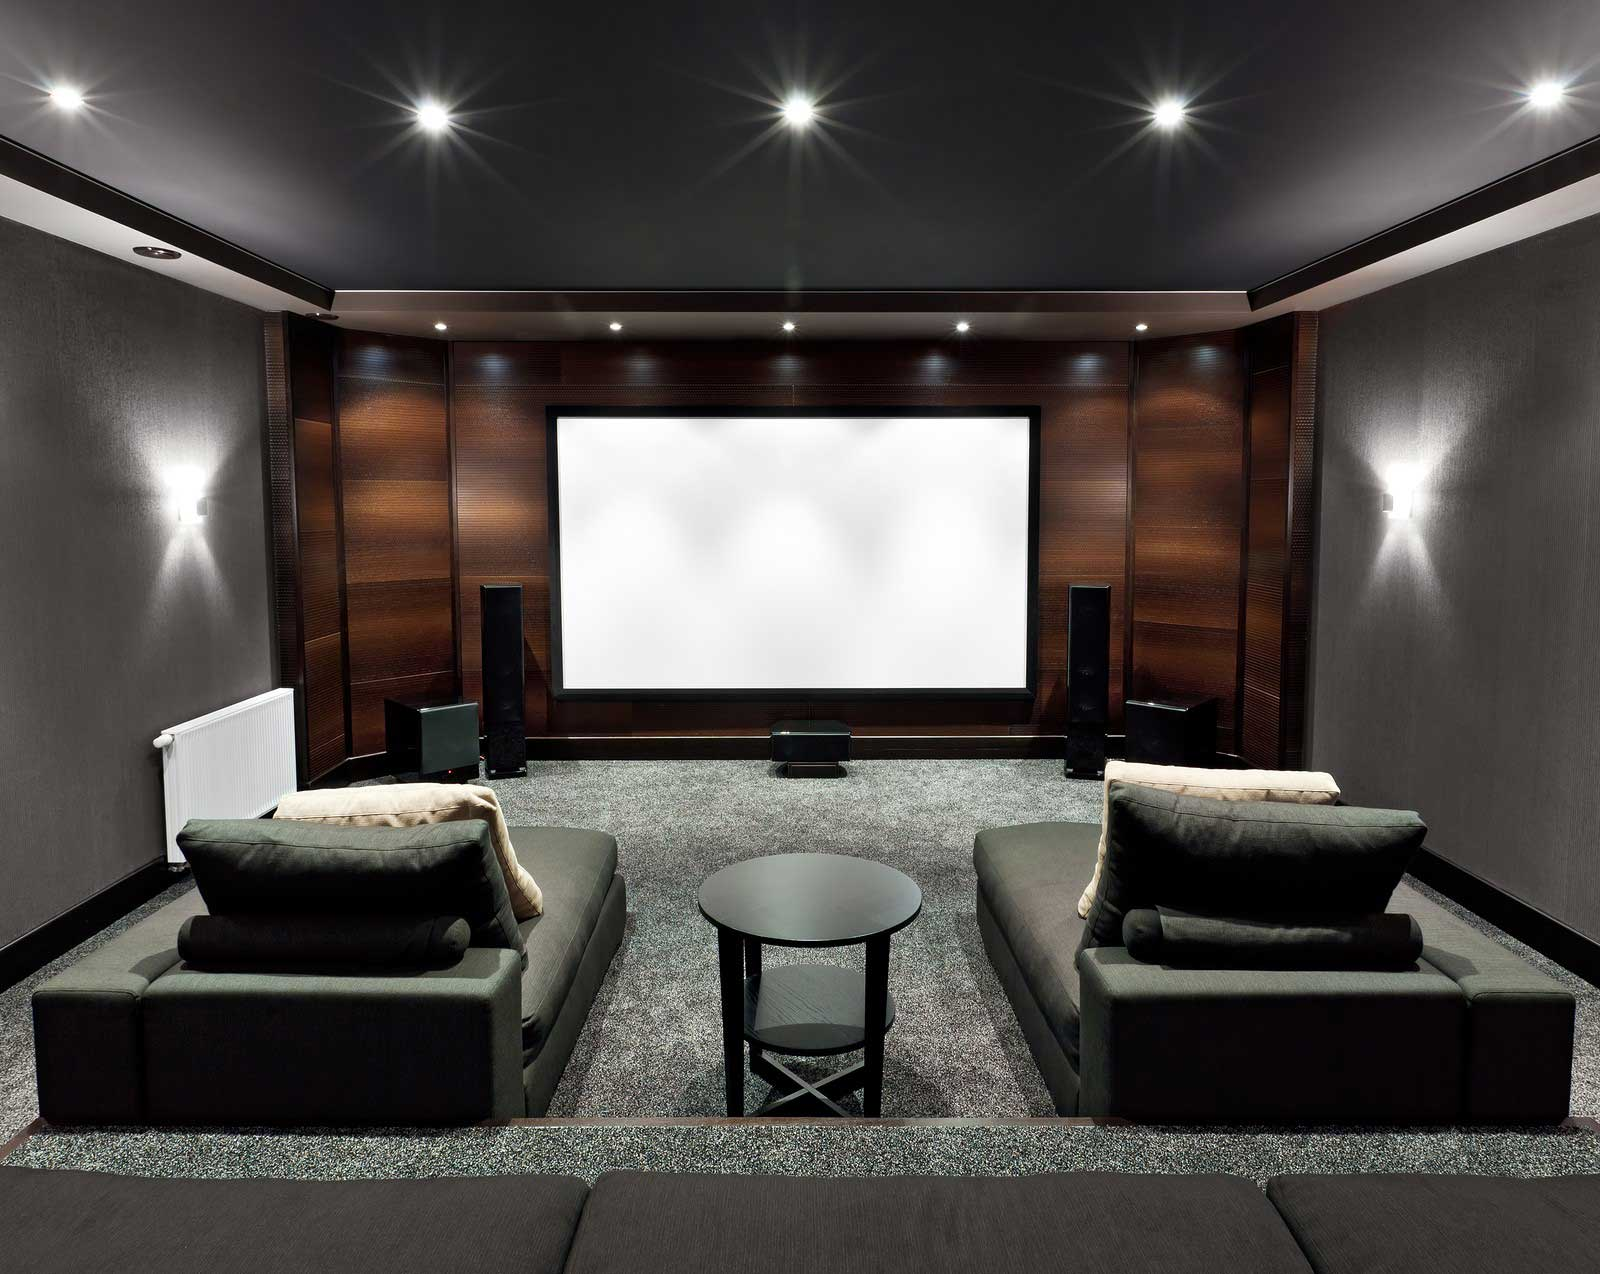 Hire Renovation Companies In Calgary To Create An Inspired Basement Wiring Leading